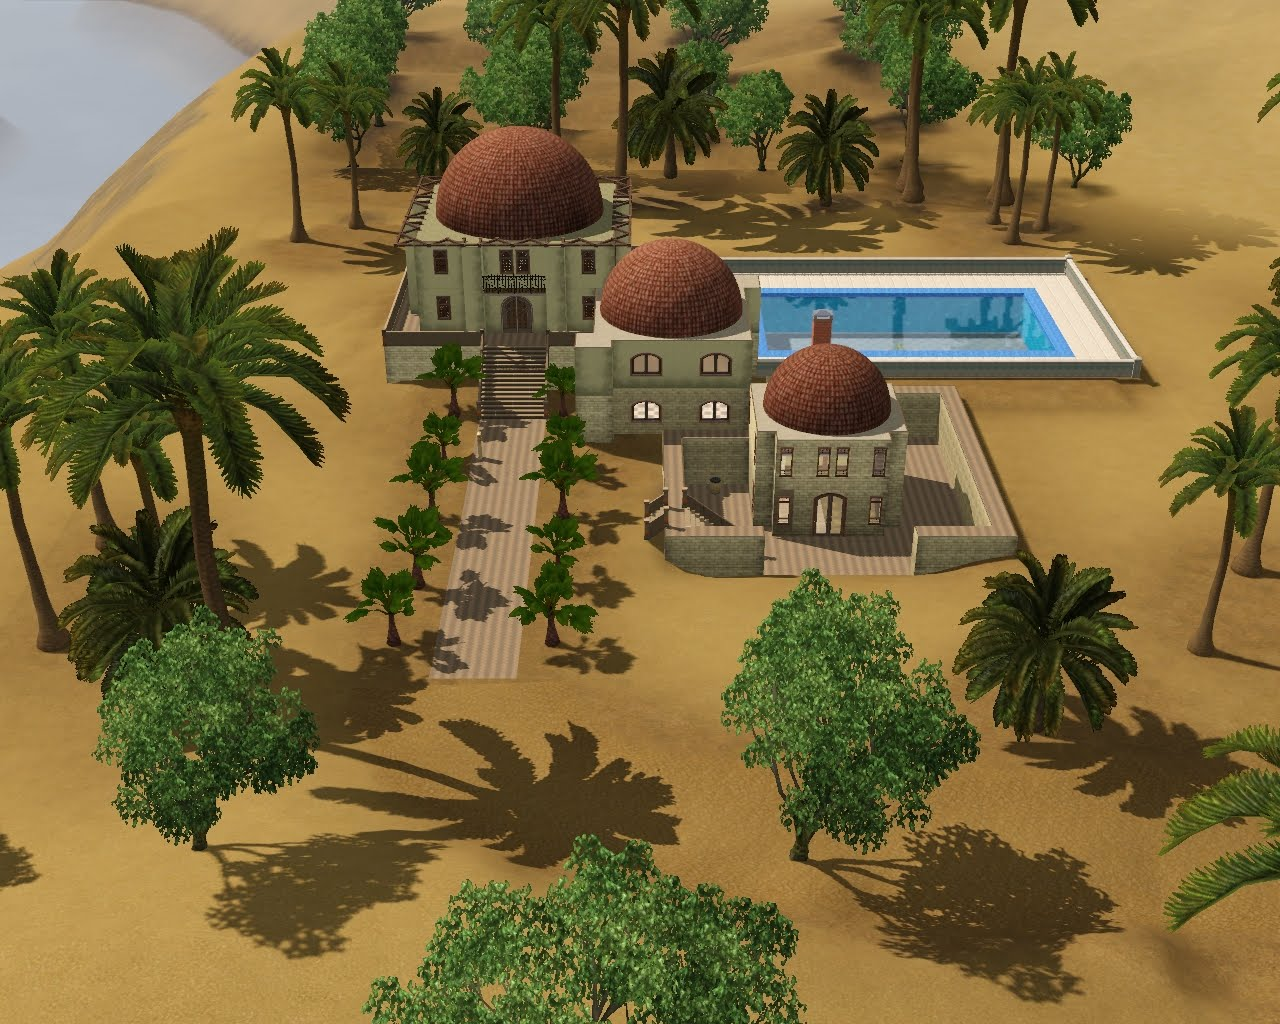 summer 39 s little sims 3 garden al simhara the sims 3. Black Bedroom Furniture Sets. Home Design Ideas